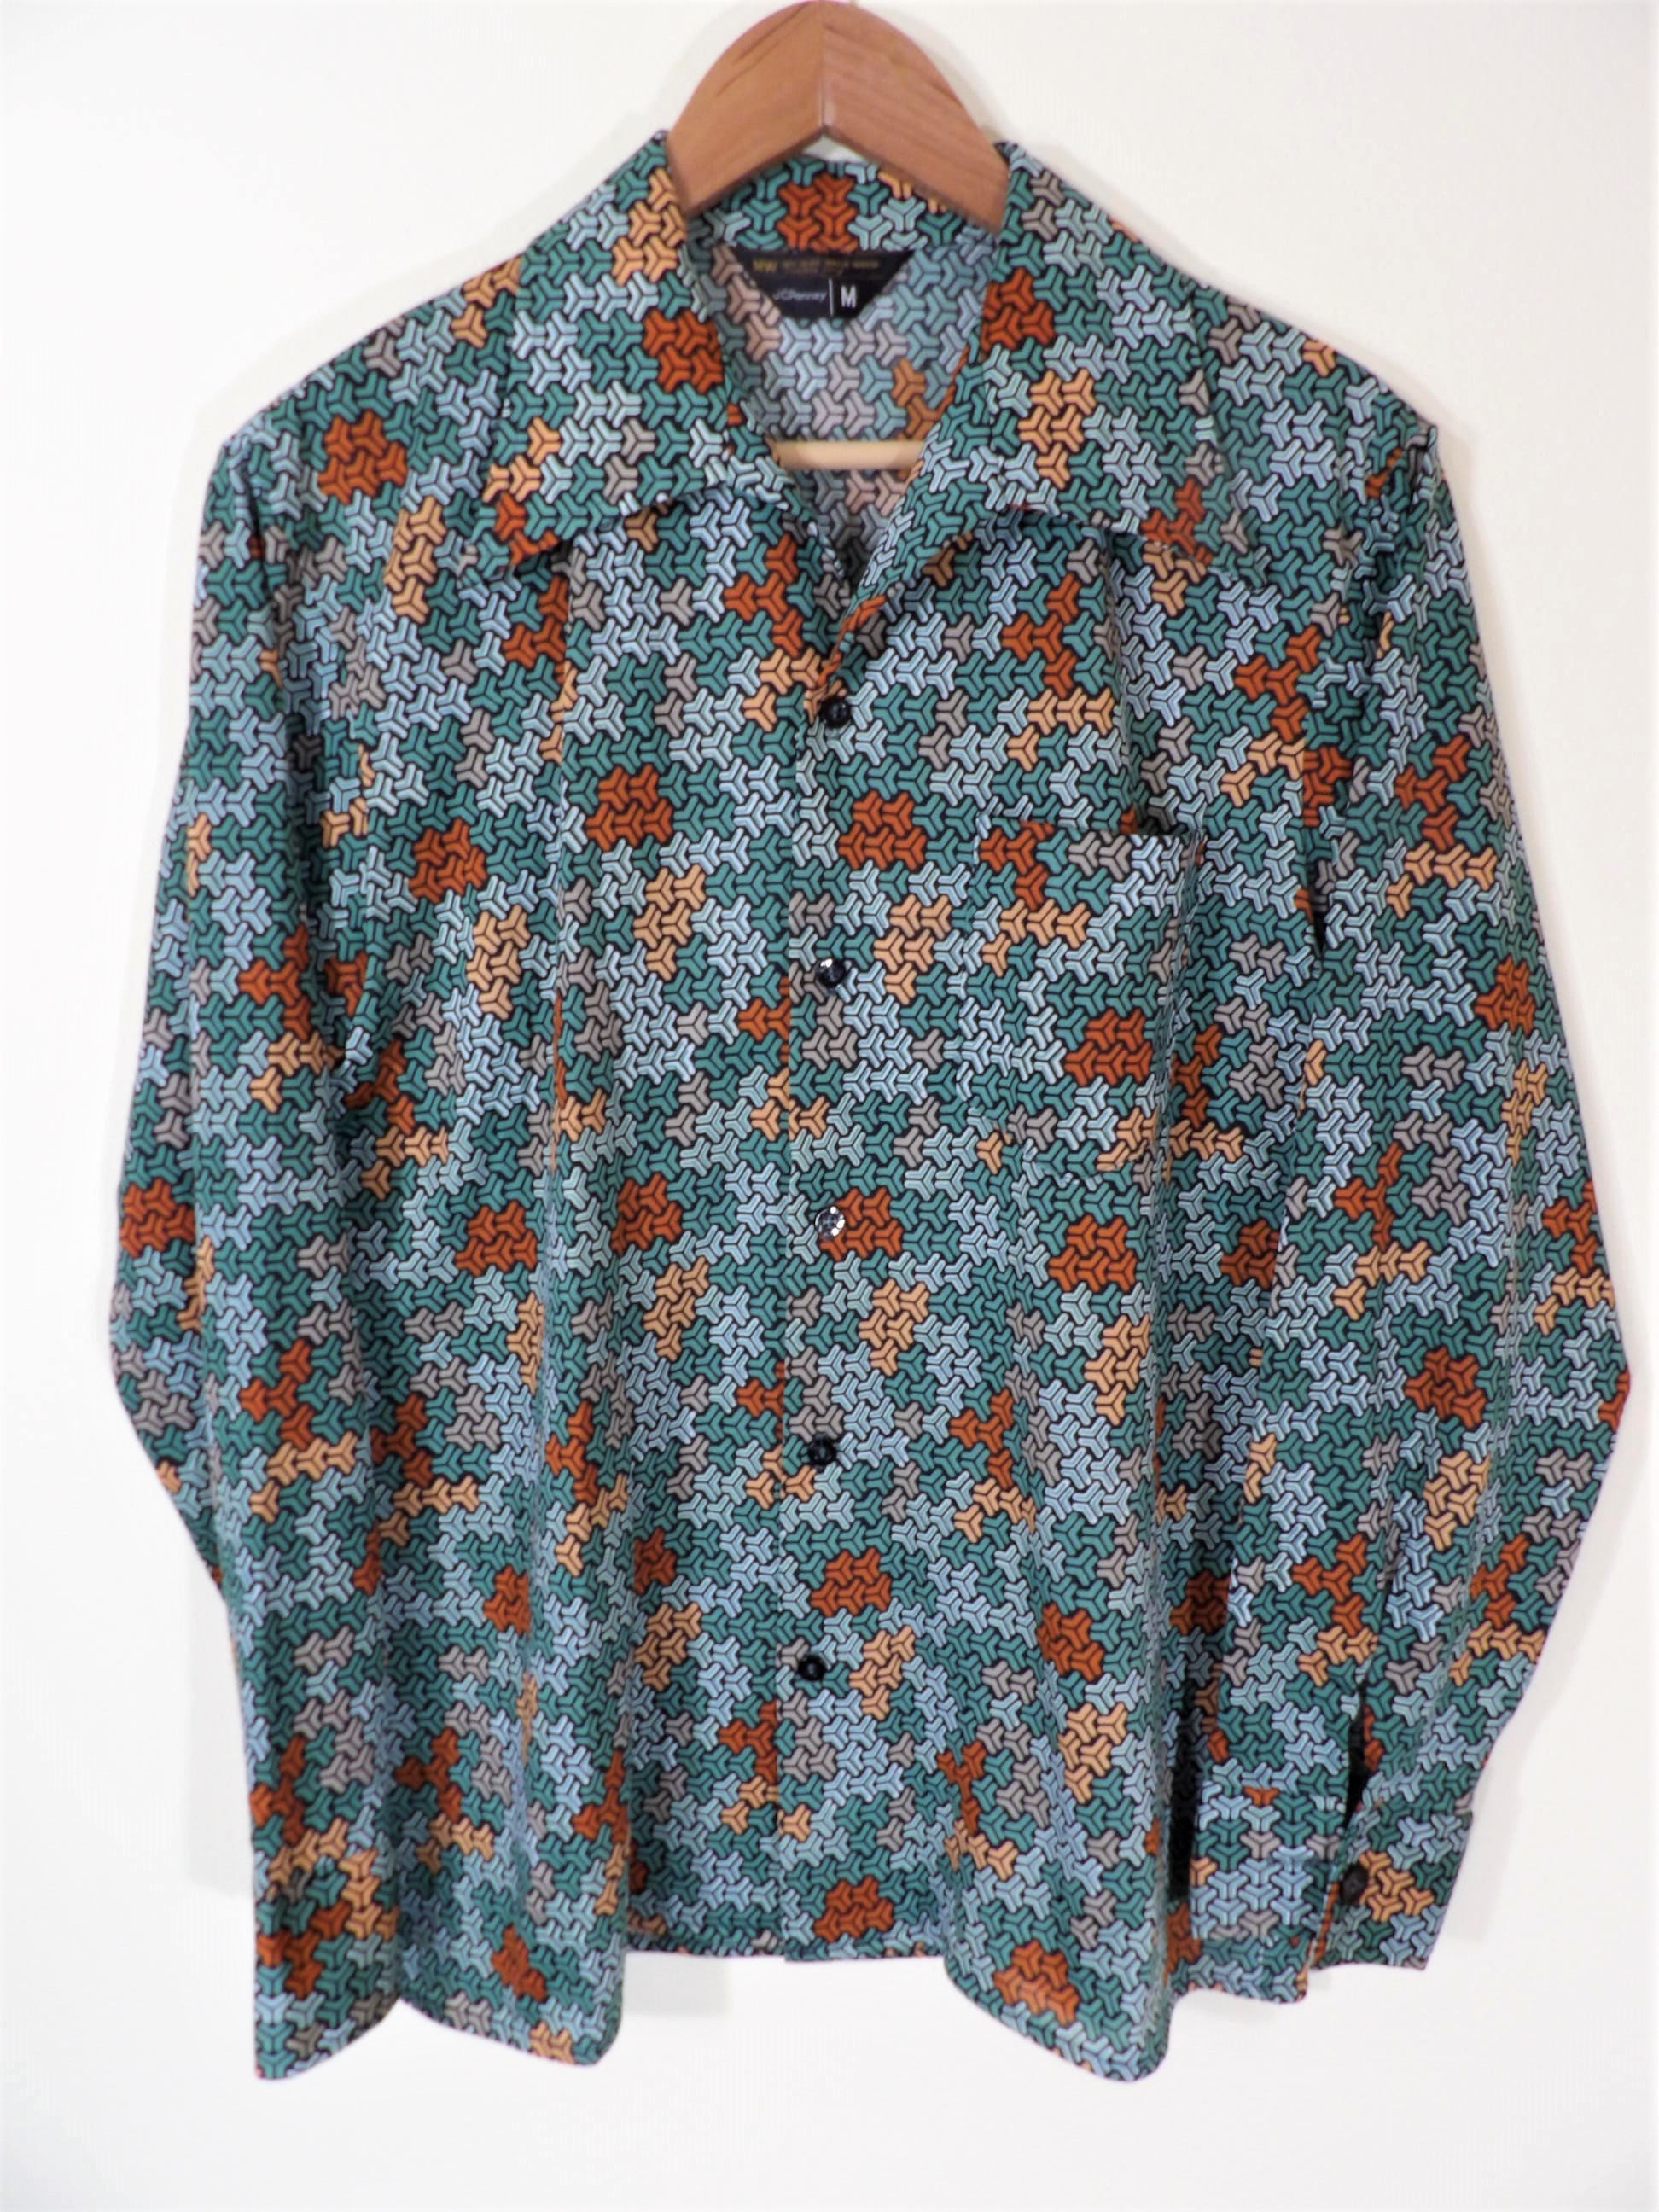 1970s Mens Shirt Styles – Vintage 70s Shirts for Guys Incredible 1970s Jcpenney Psychdelic Escher Print Geometric Elongated Collar Knit Disco Shirt Mens Chest 42 $0.00 AT vintagedancer.com